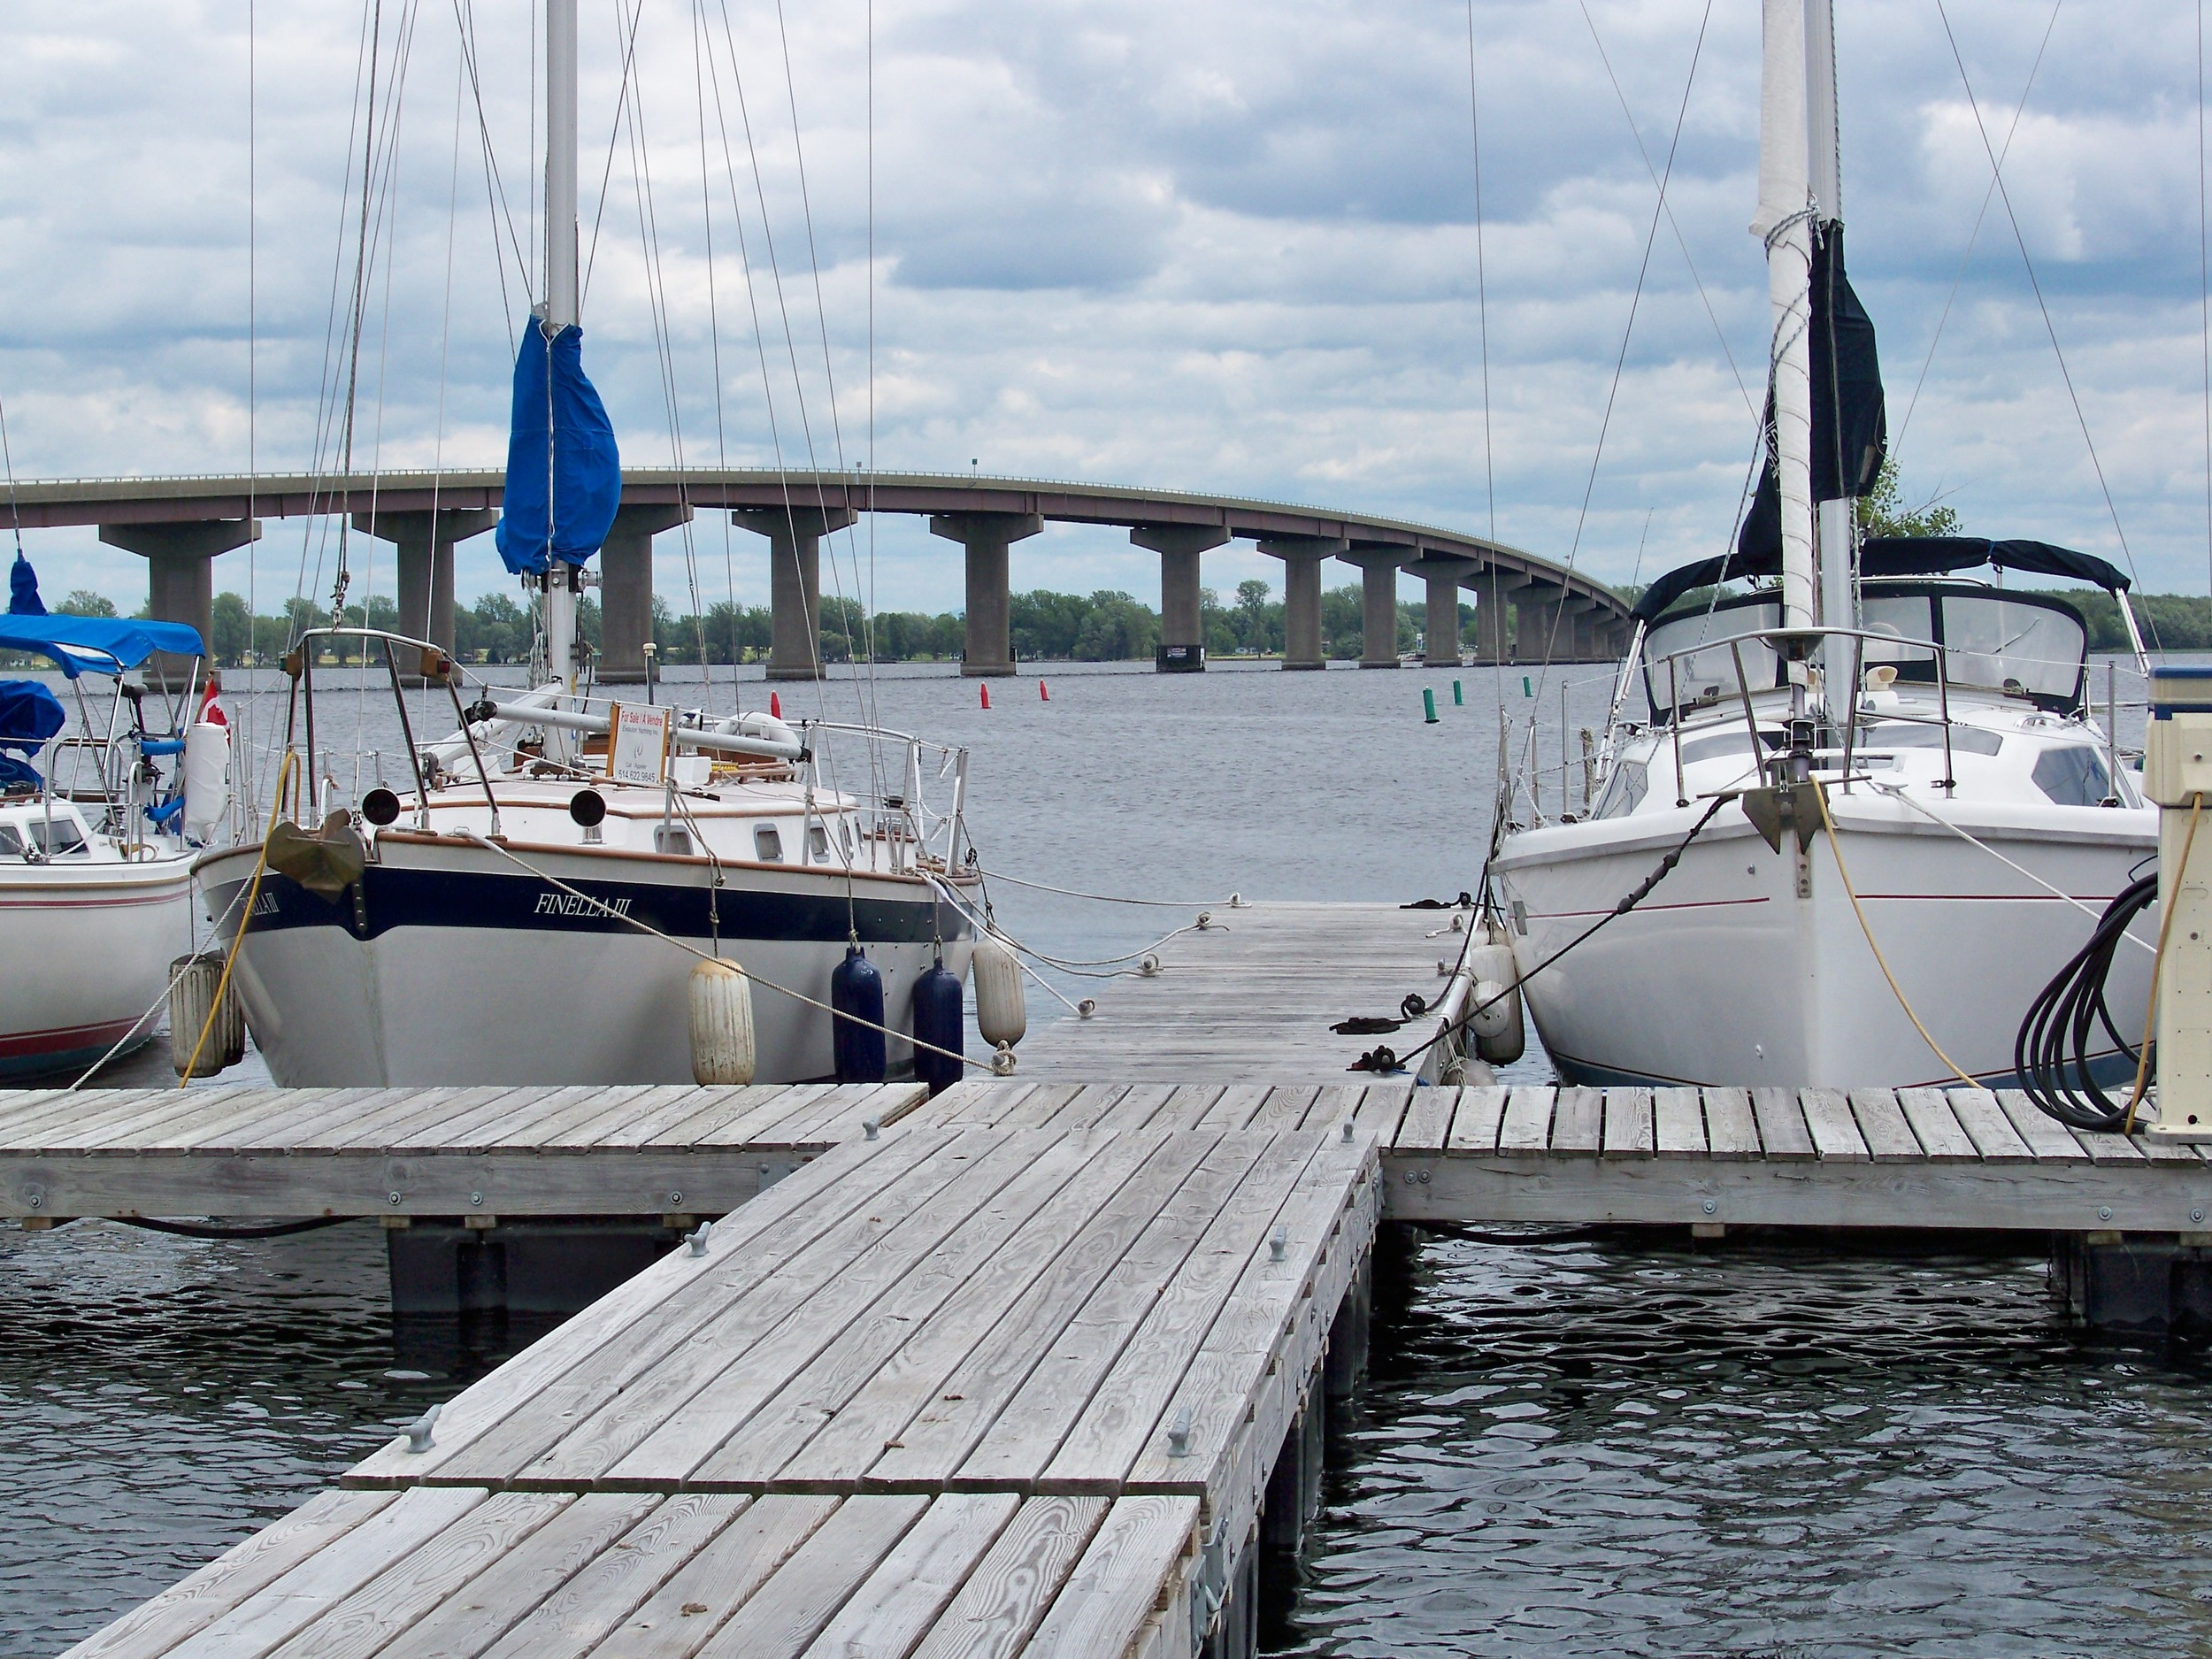 Marina docks at Rouses Point New York in the foreground and bridge pilings with current in the background add this to a Milk Run.